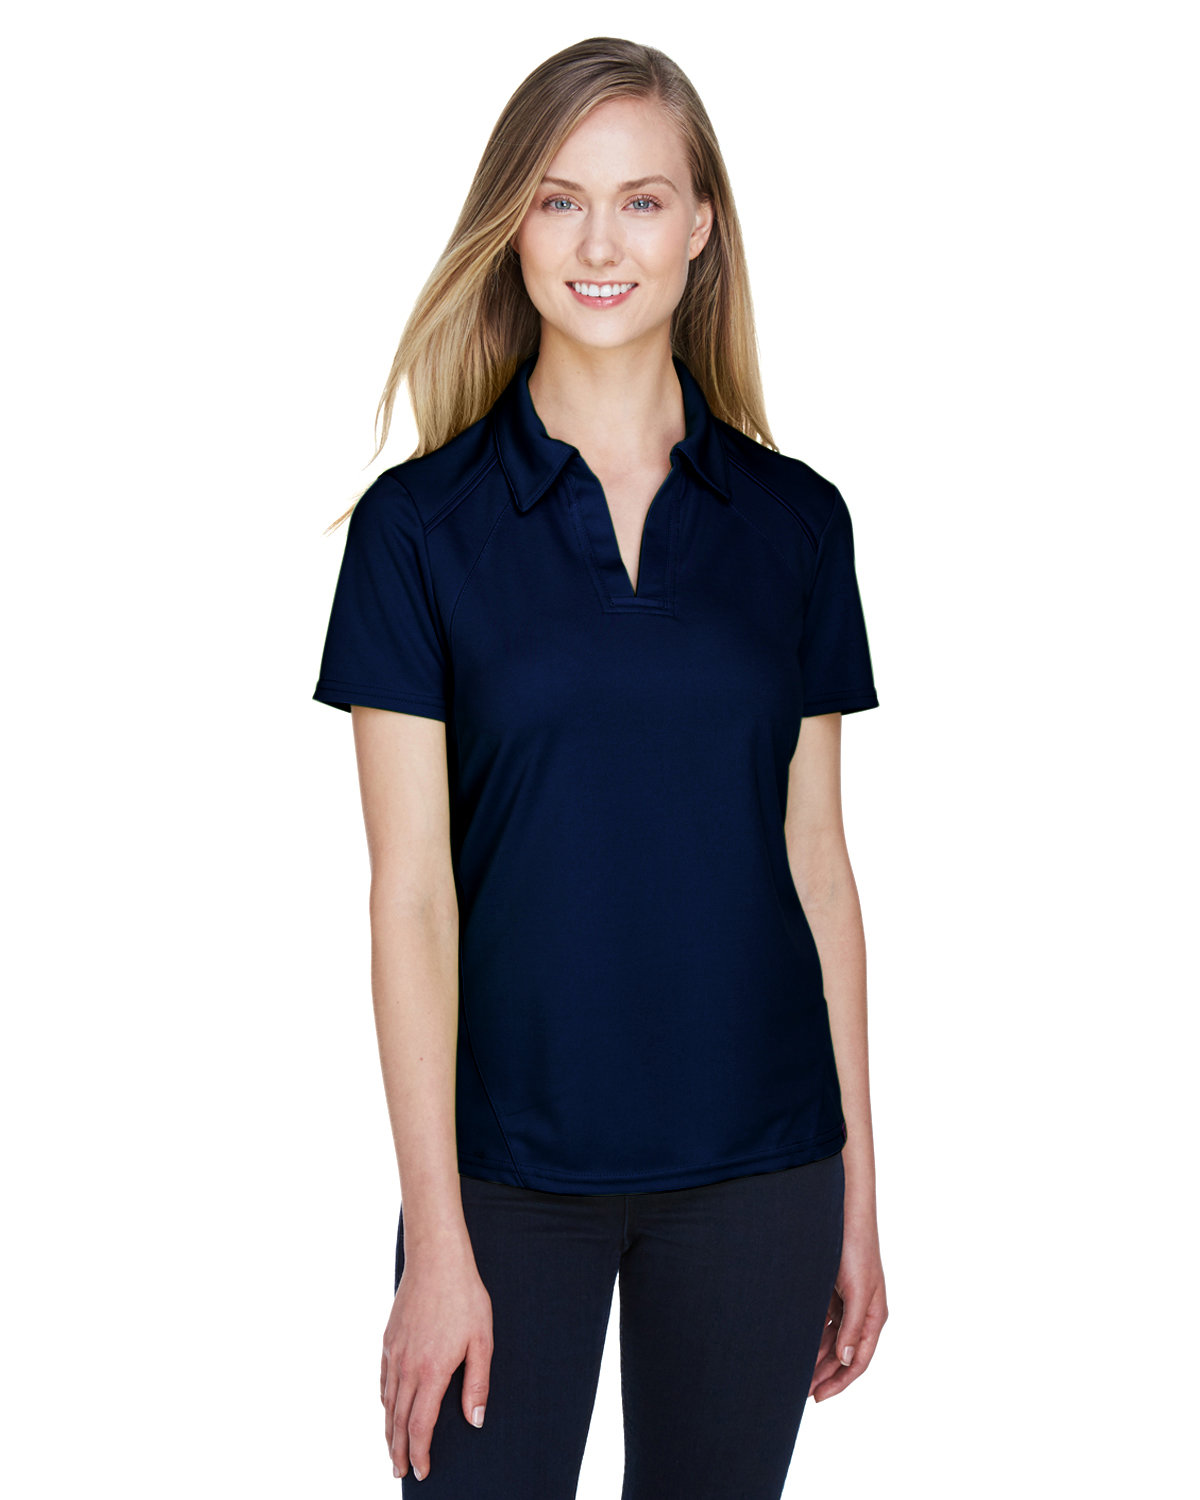 North End Ladies' Recycled Polyester Performance Piqué Polo NIGHT